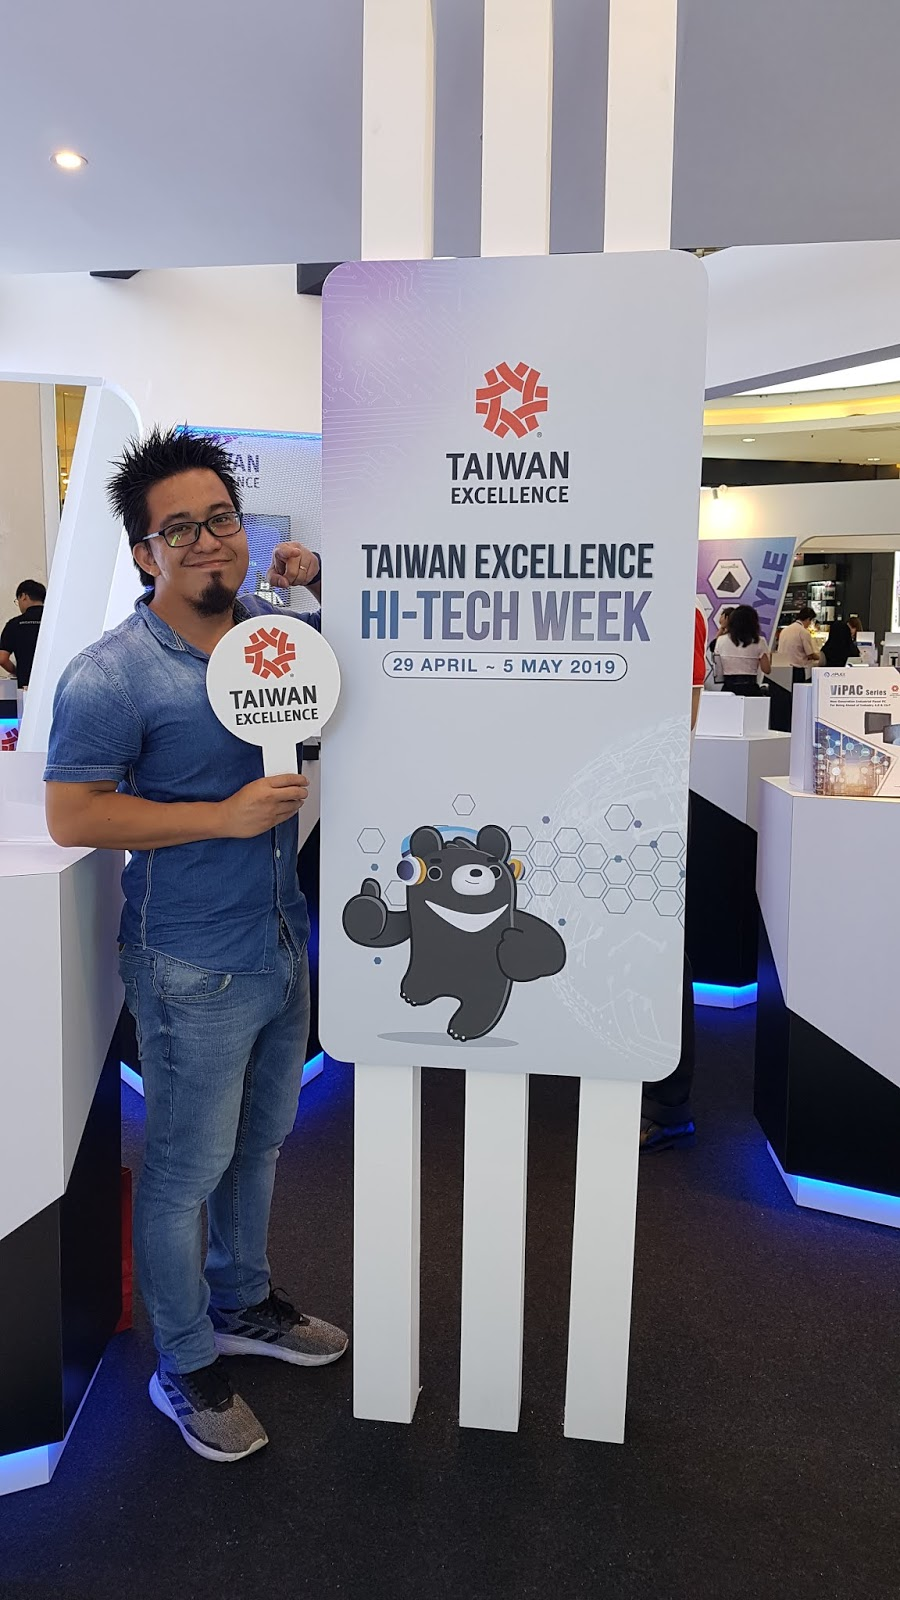 Taiwan Excellence Hi-Tech Week Plaza Low Yat